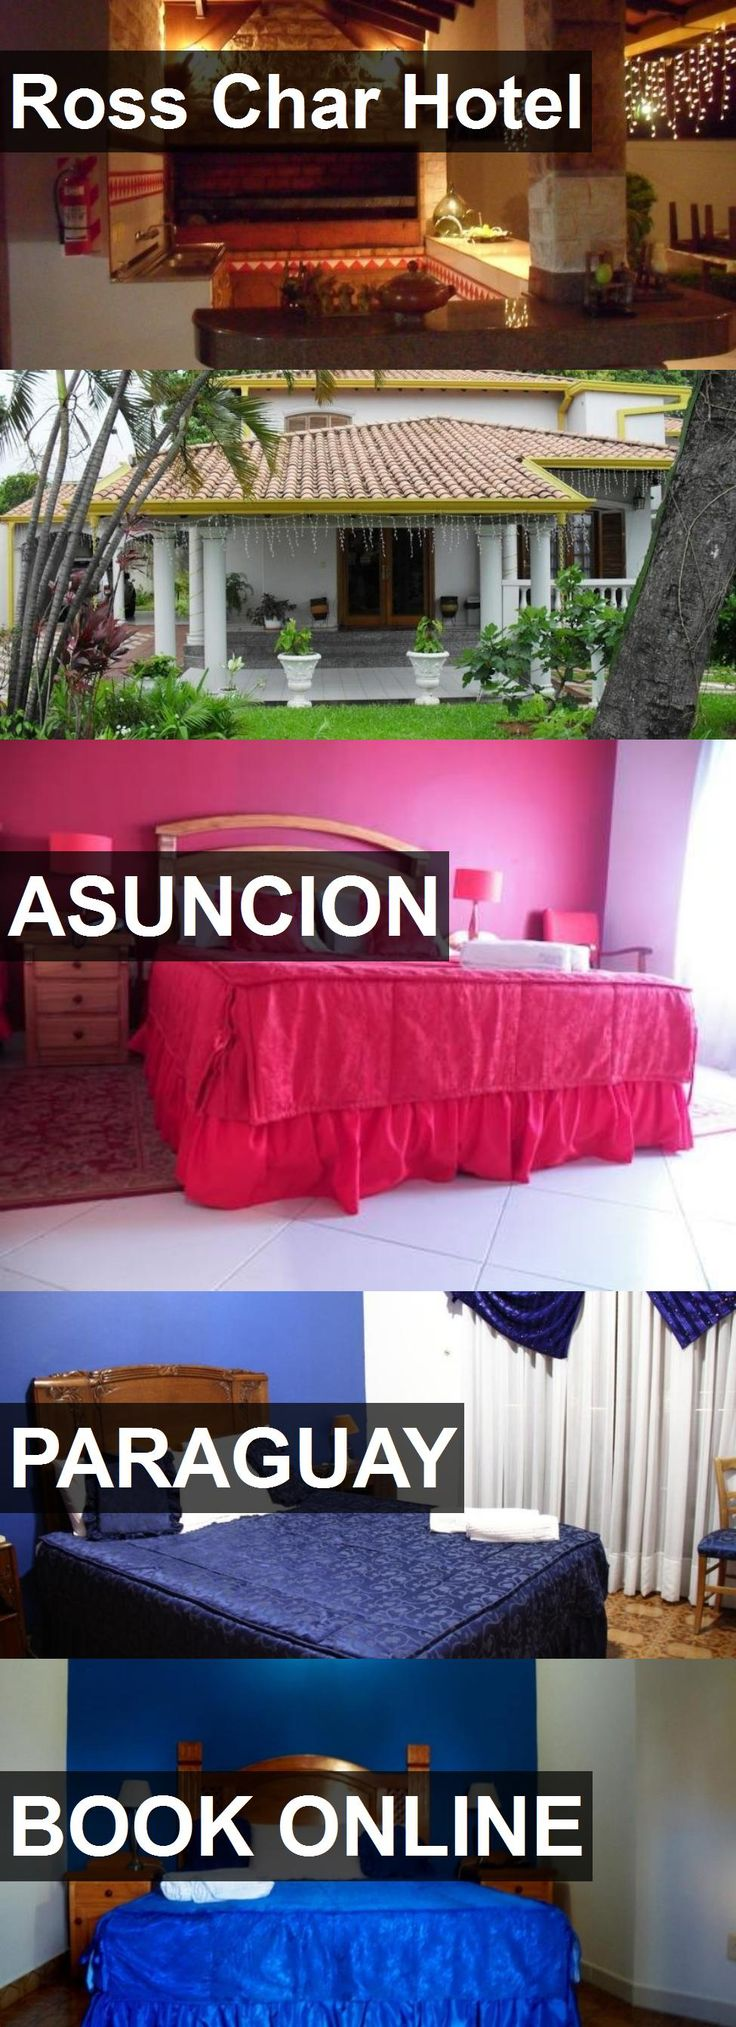 Hotel Ross Char Hotel in Asuncion, Paraguay. For more information, photos, reviews and best prices please follow the link. #Paraguay #Asuncion #RossCharHotel #hotel #travel #vacation